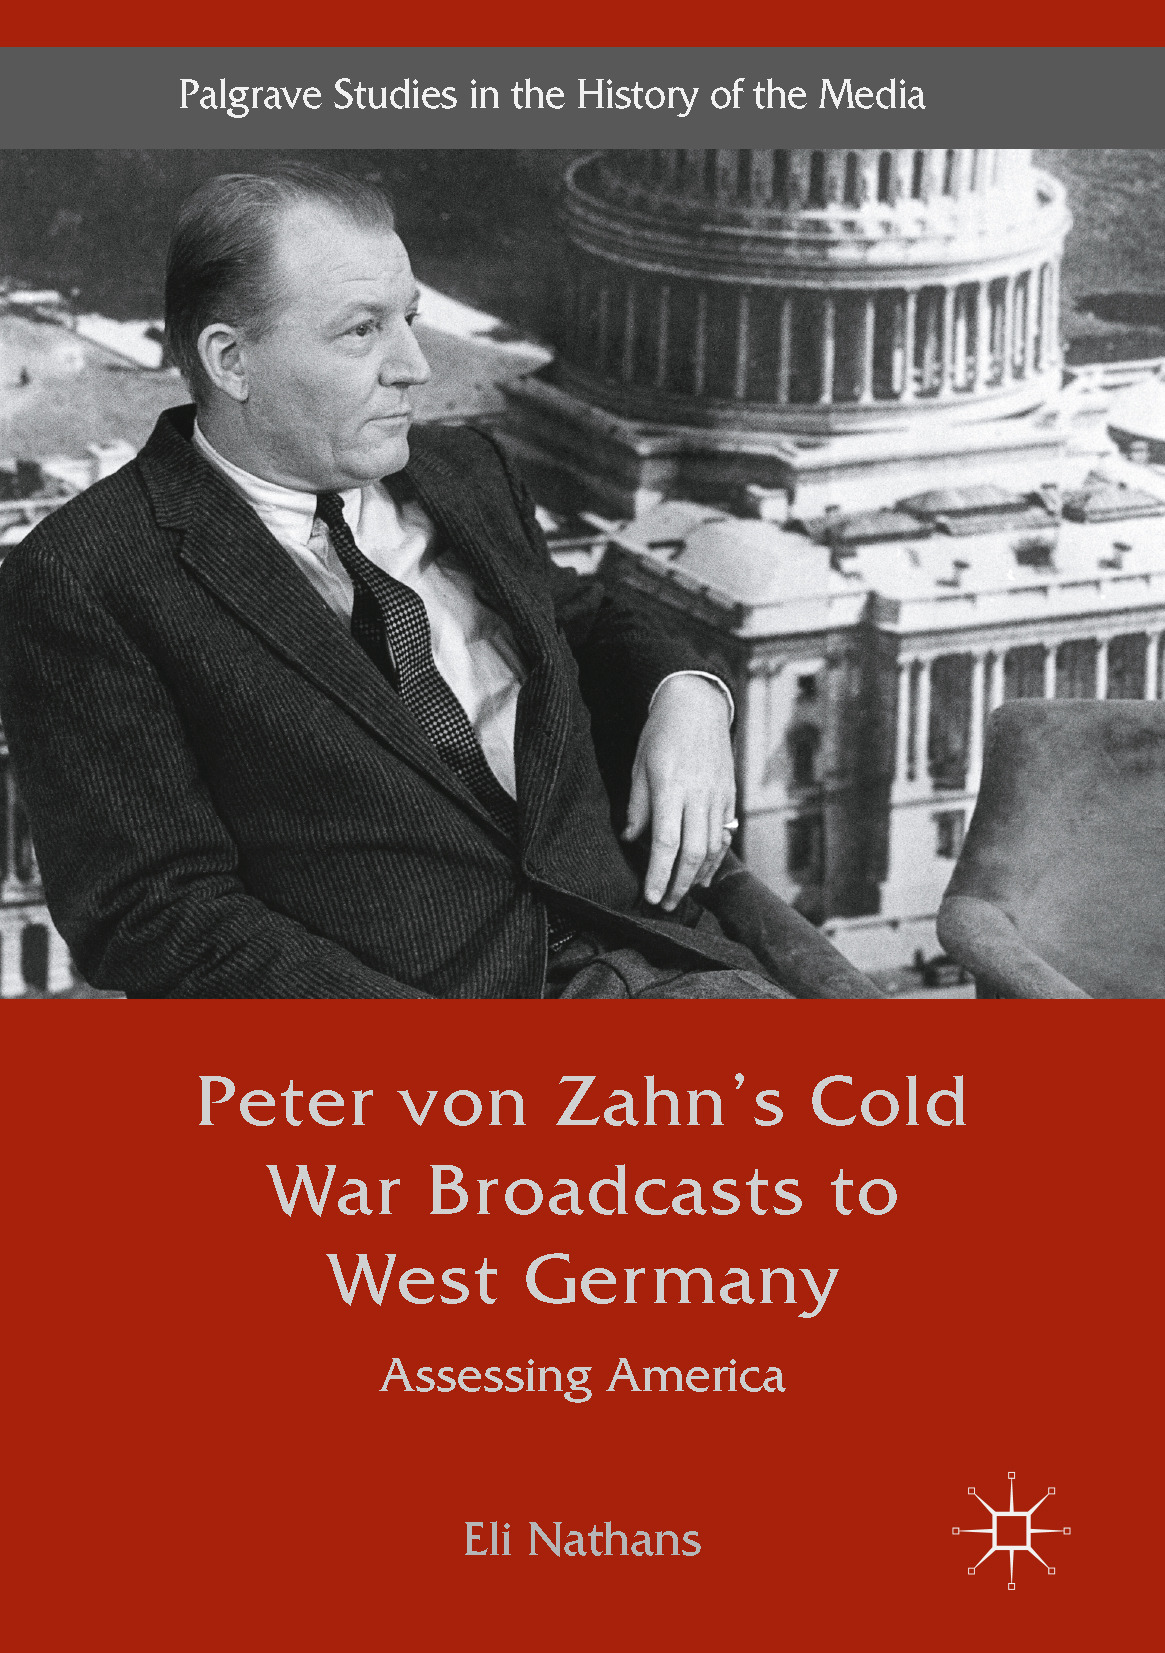 Nathans, Eli - Peter von Zahn's Cold War Broadcasts to West Germany, ebook